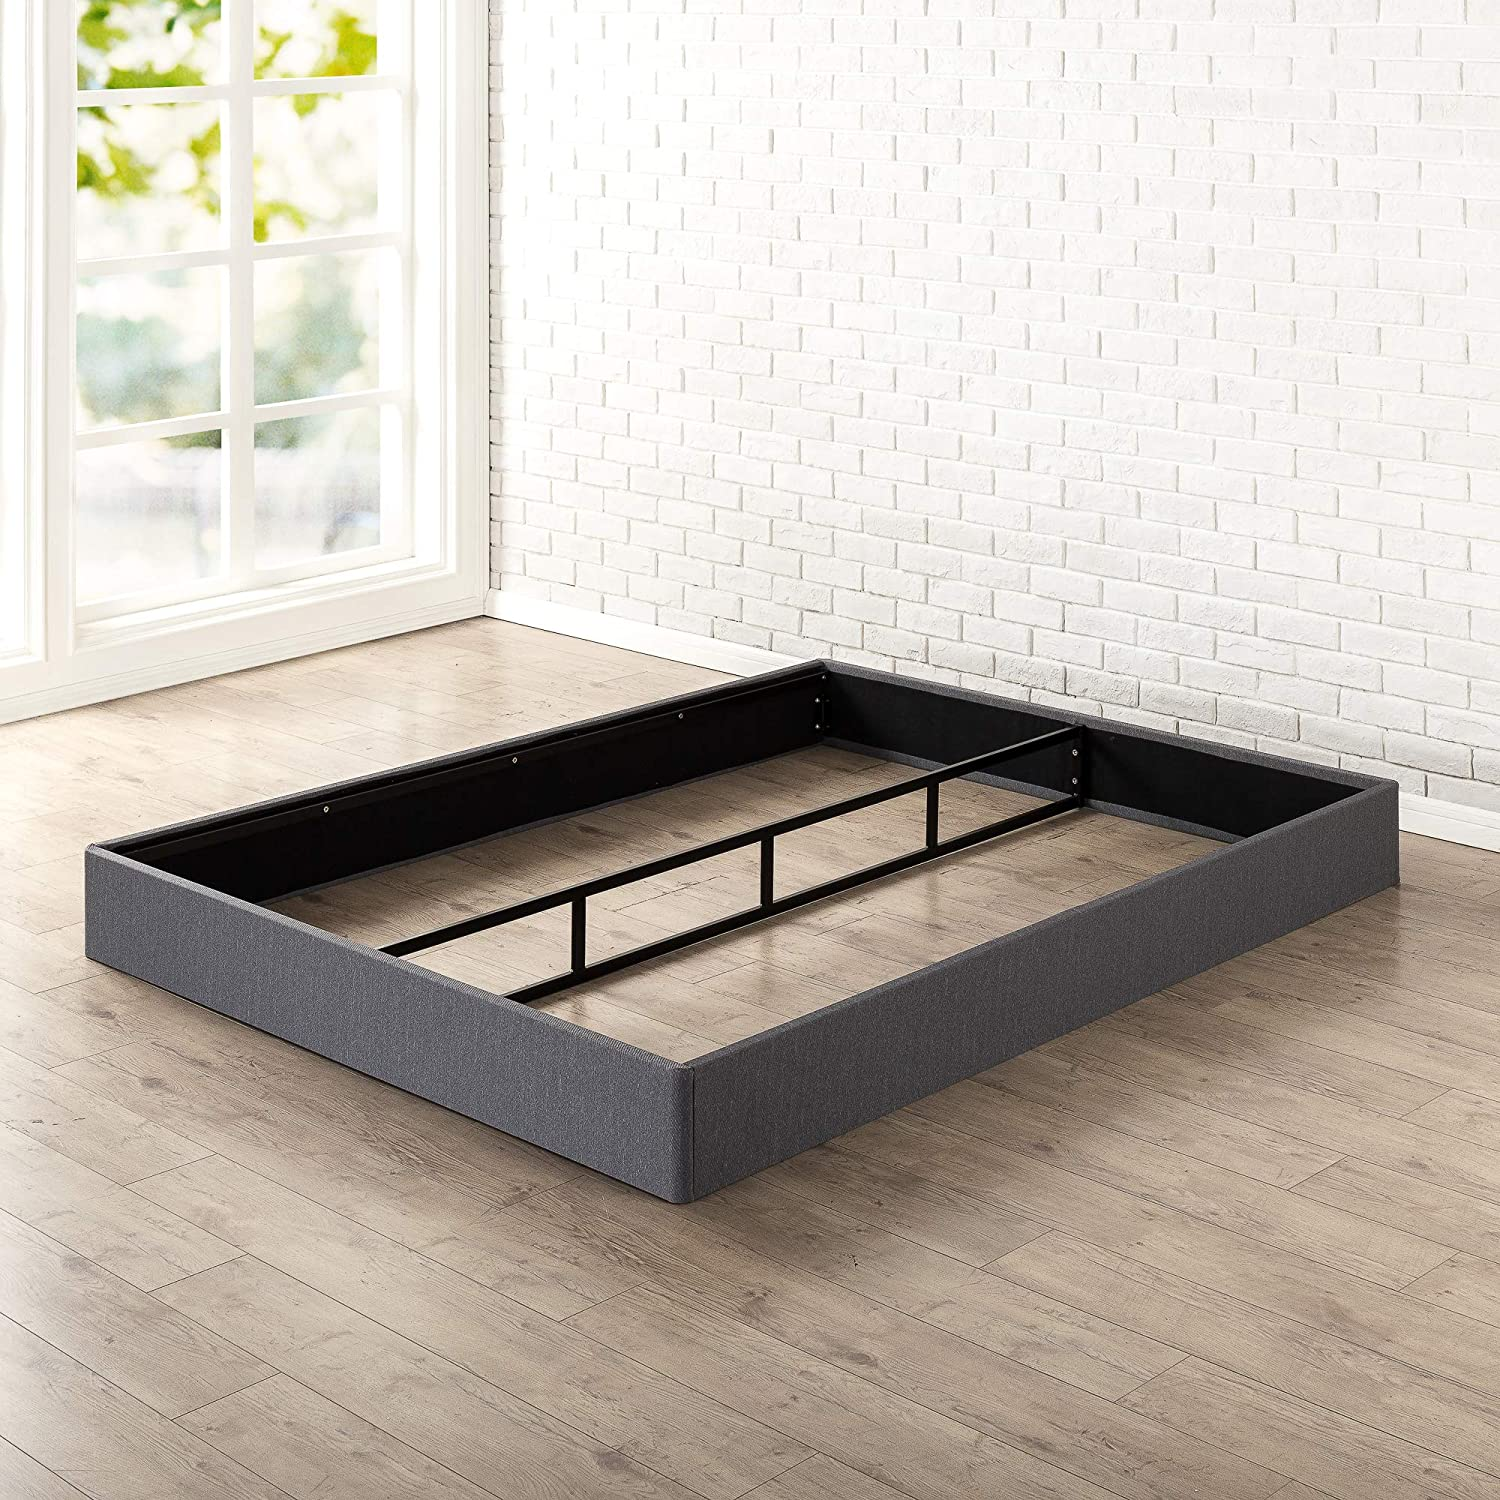 Zinus Daniel 7.5 Inch Essential Metal Box Spring with Easy Assembly , Queen: Furniture & Decor